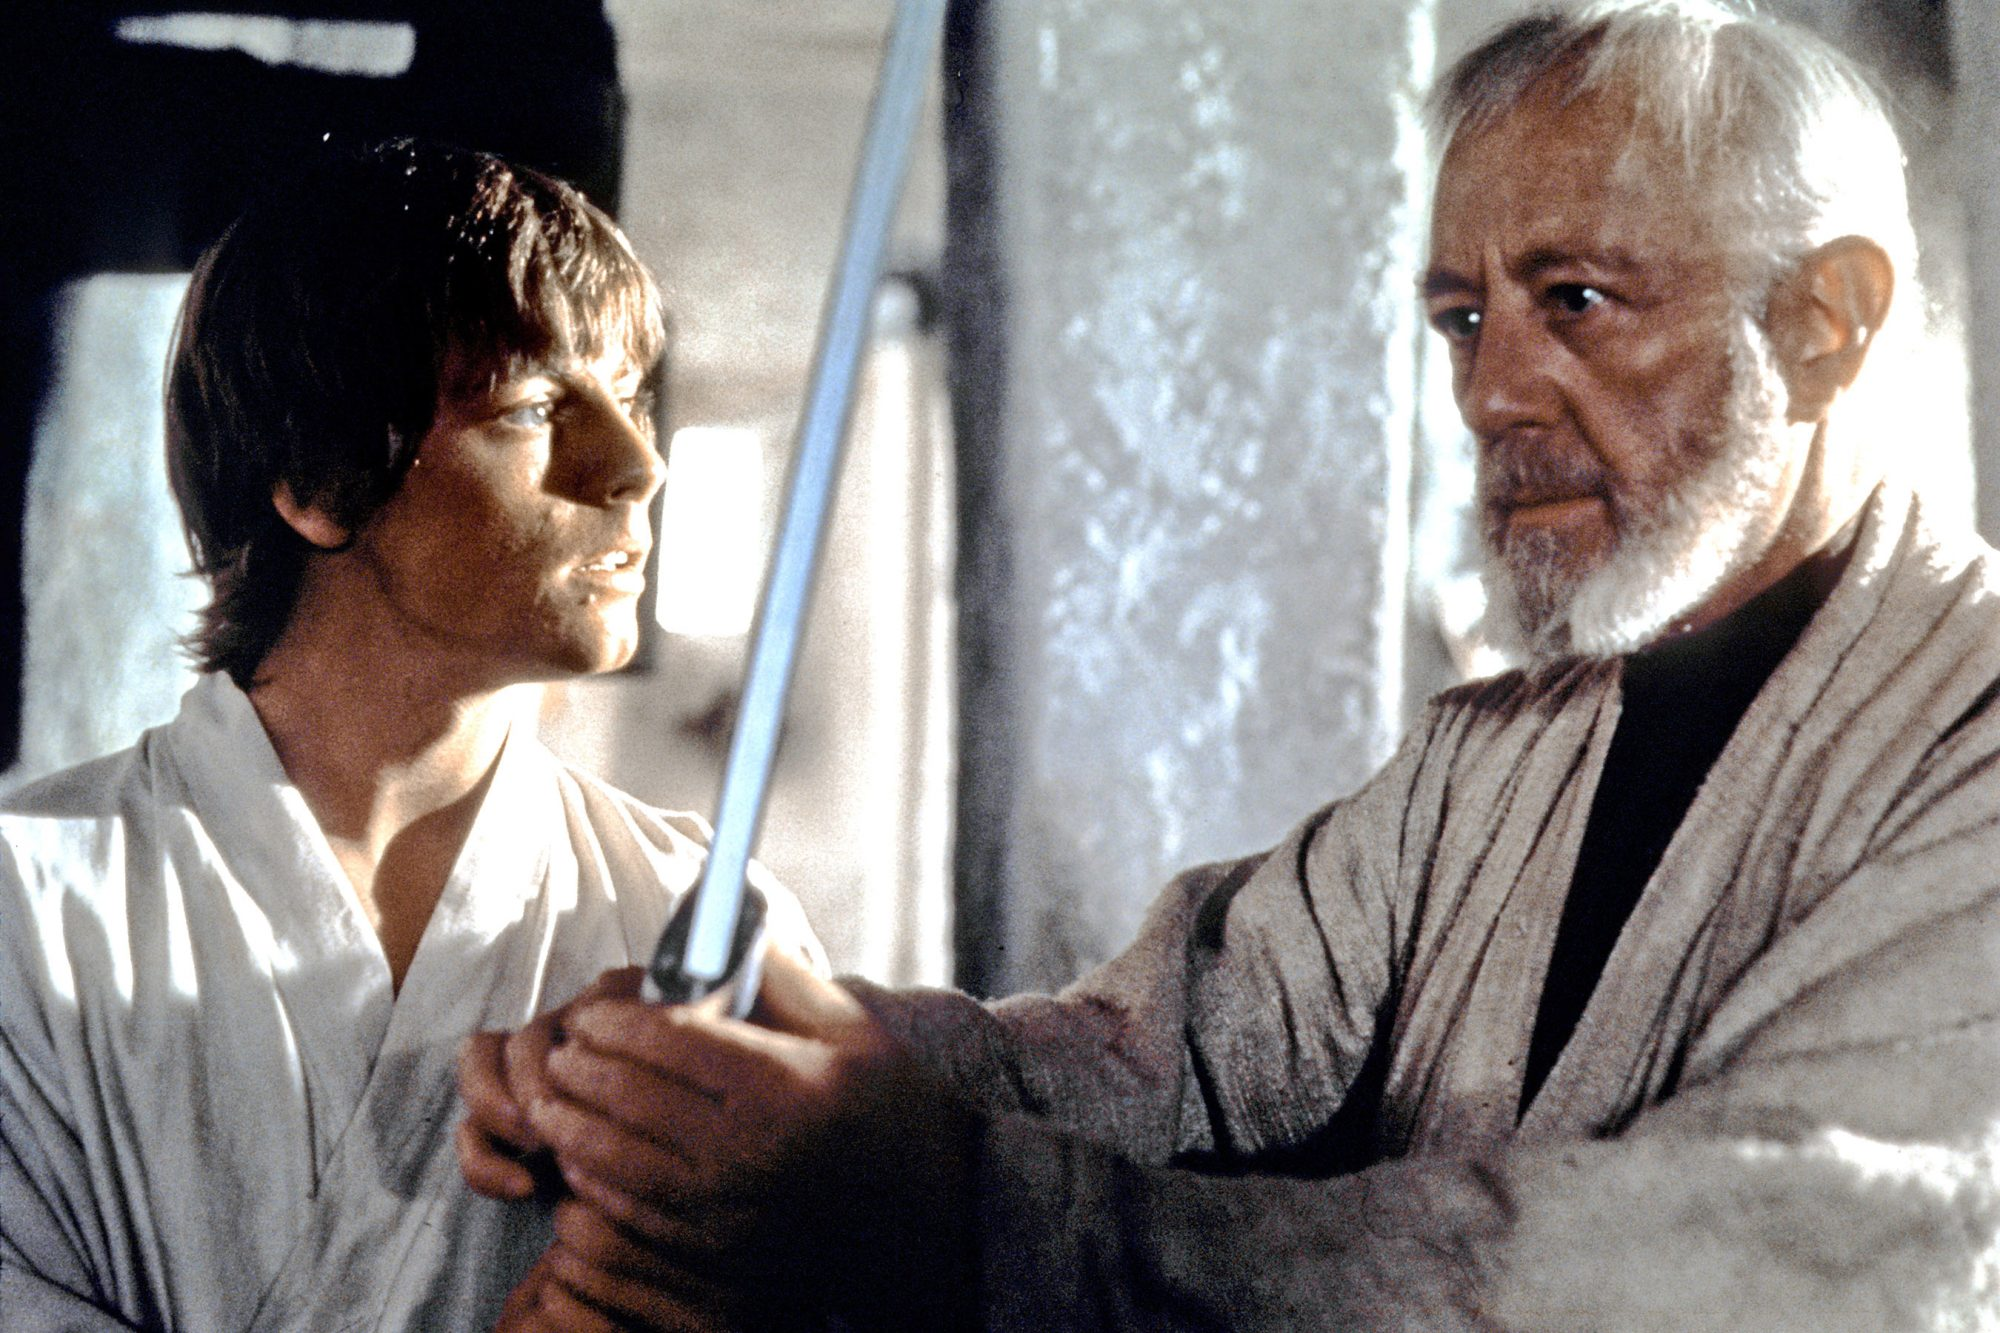 Star Wars: Episode IV - A New HopeMark Hamill (L) and Alec Guinness